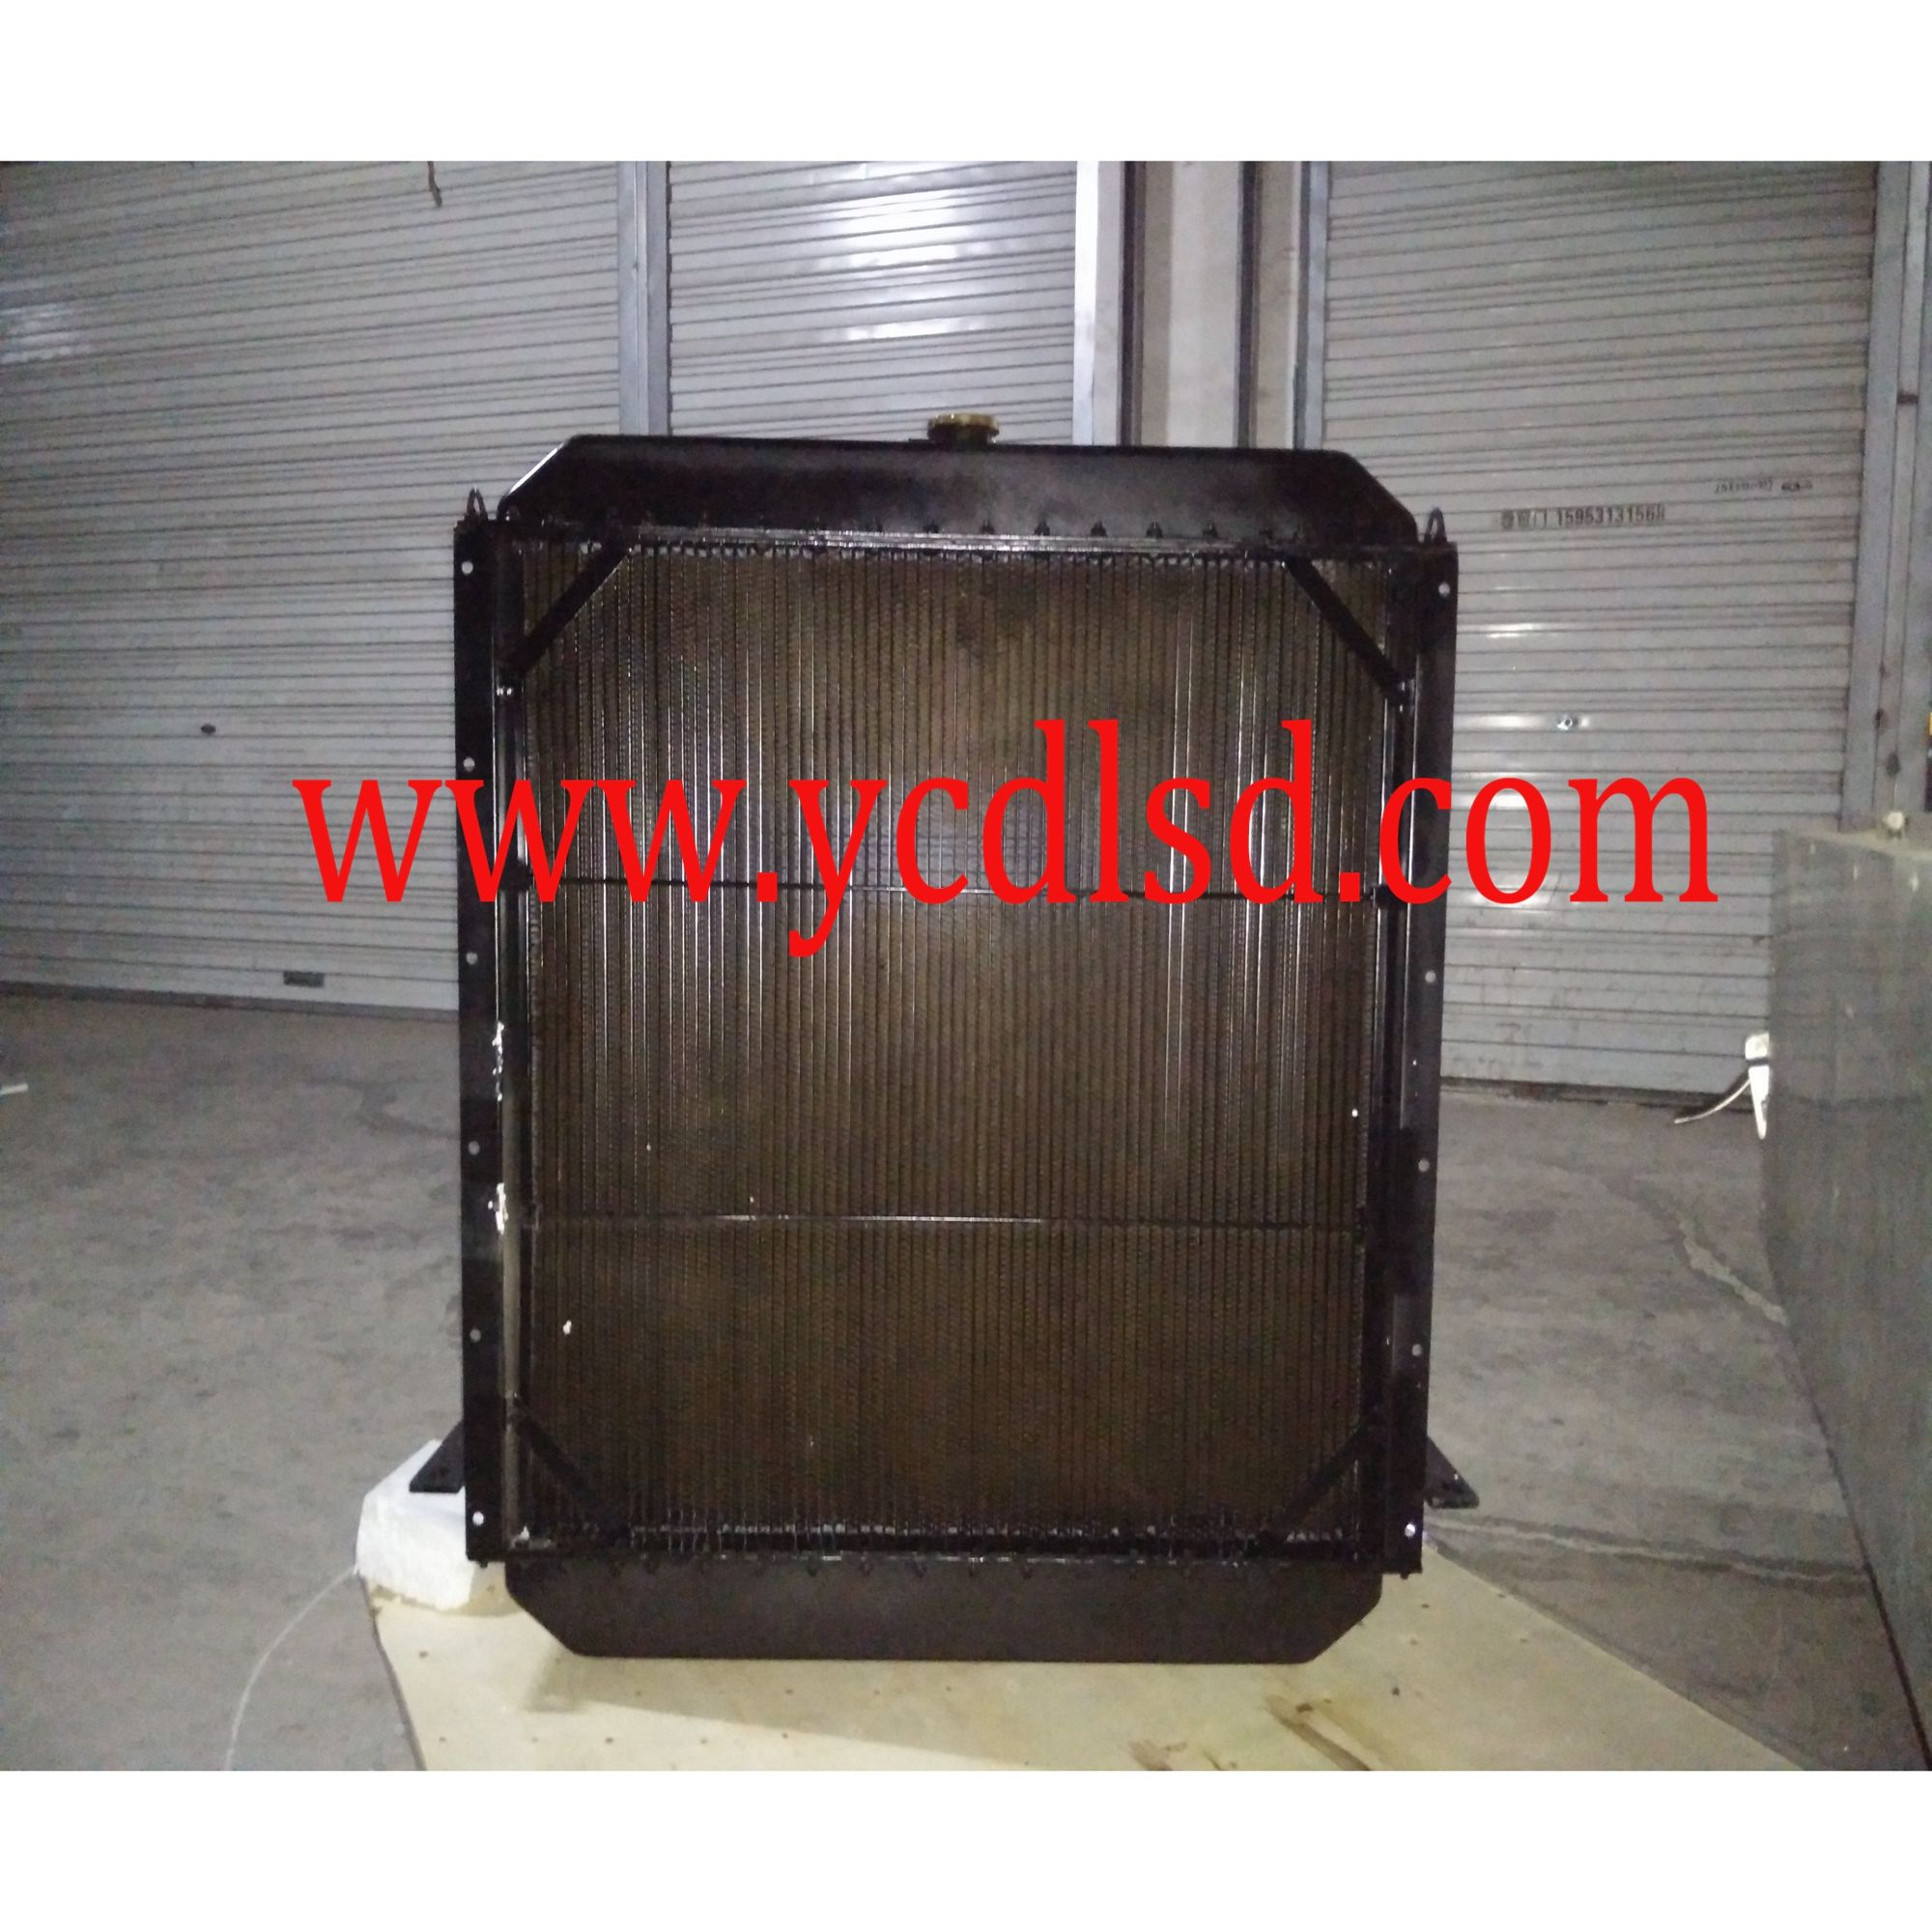 Radiator P-202-07-063 CL956-WD-03 for CHANGLIN 956 loader